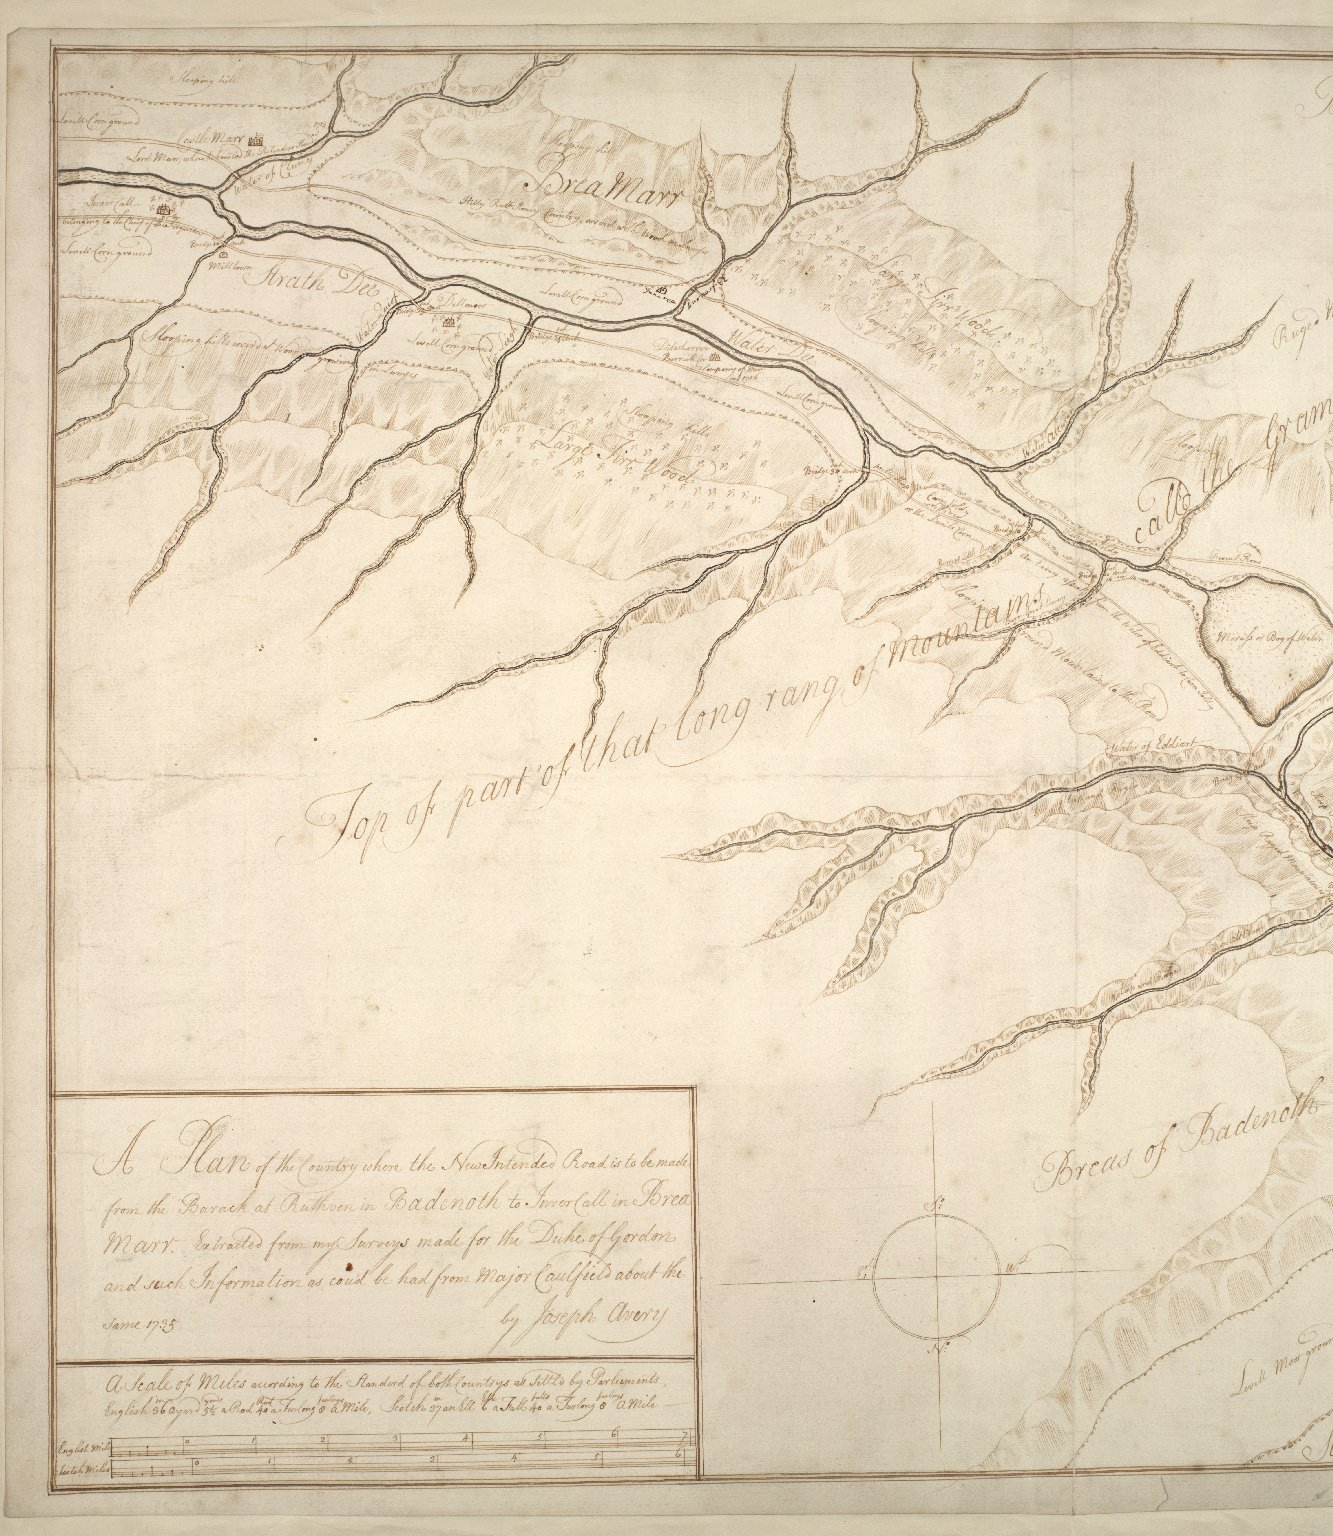 Plan of the County where the New Intended Road is to be made from the Barack at Ruthven in Badenoch to Invercall in Braemar [2 of 2]